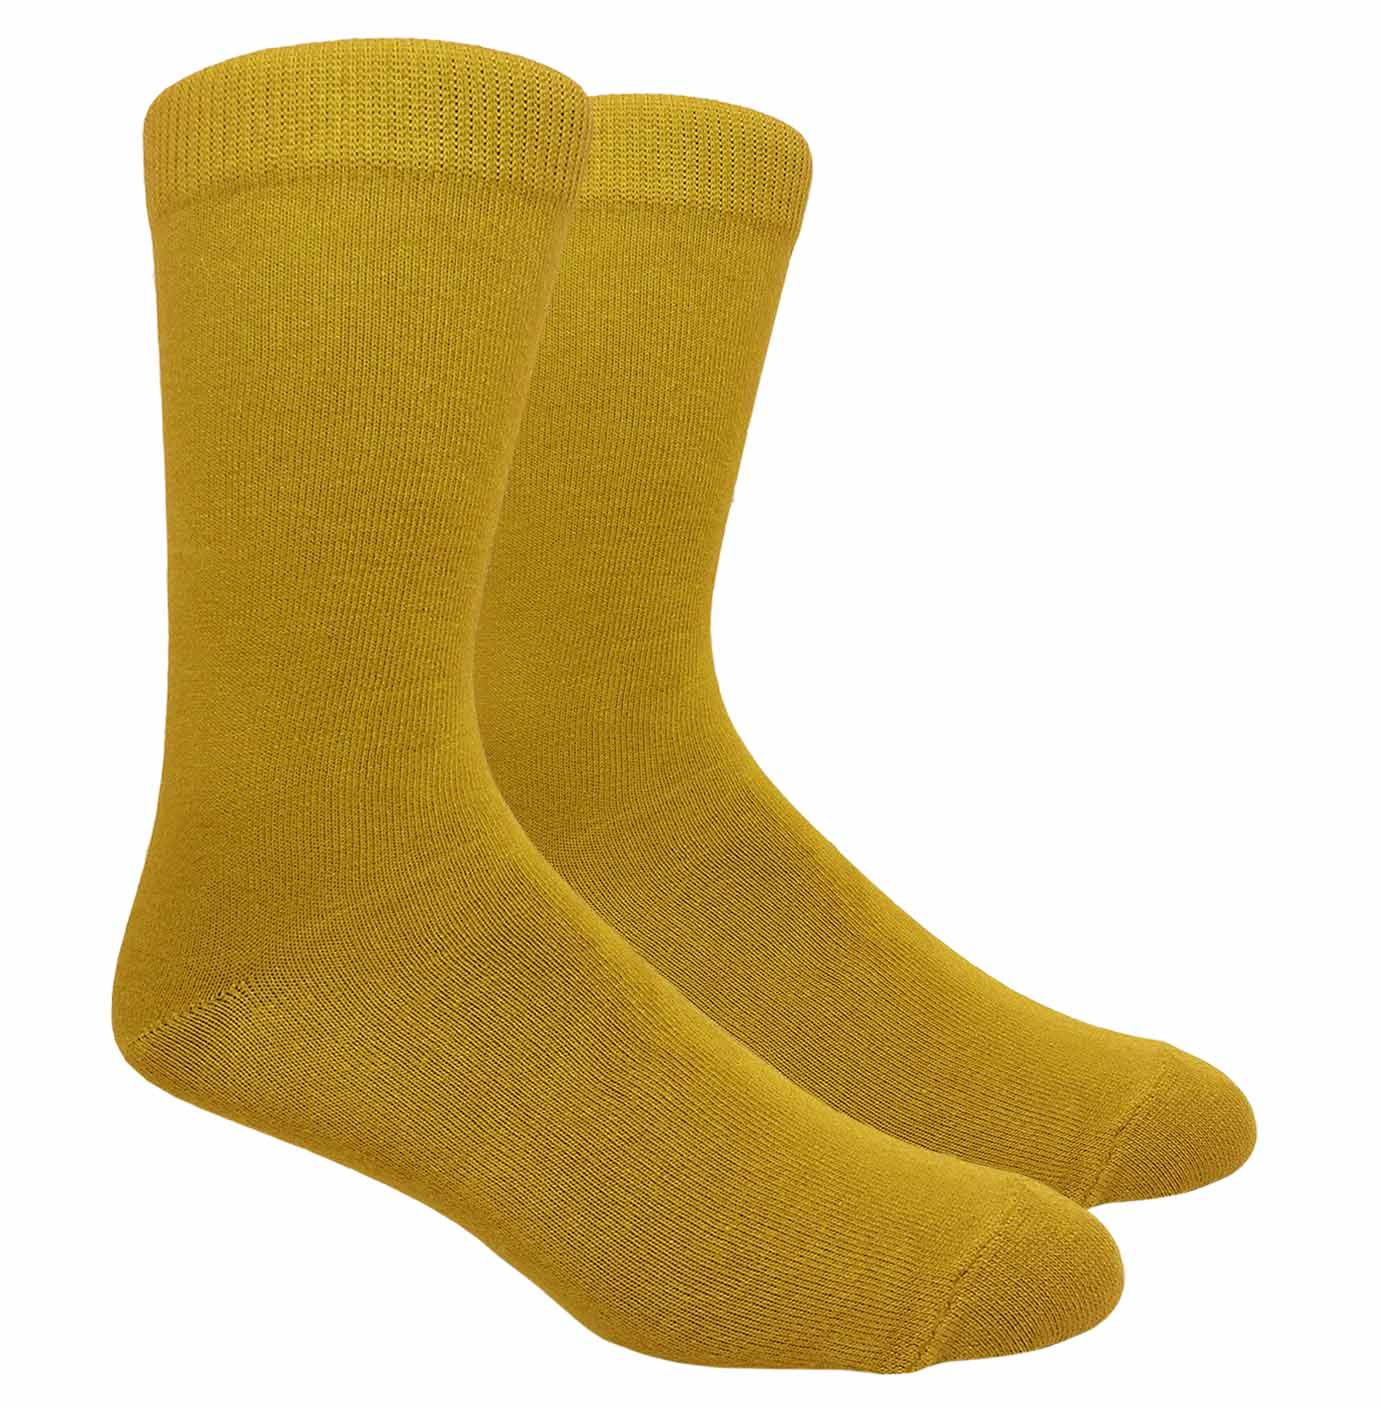 Black Label Plain Dress Socks - Mustard